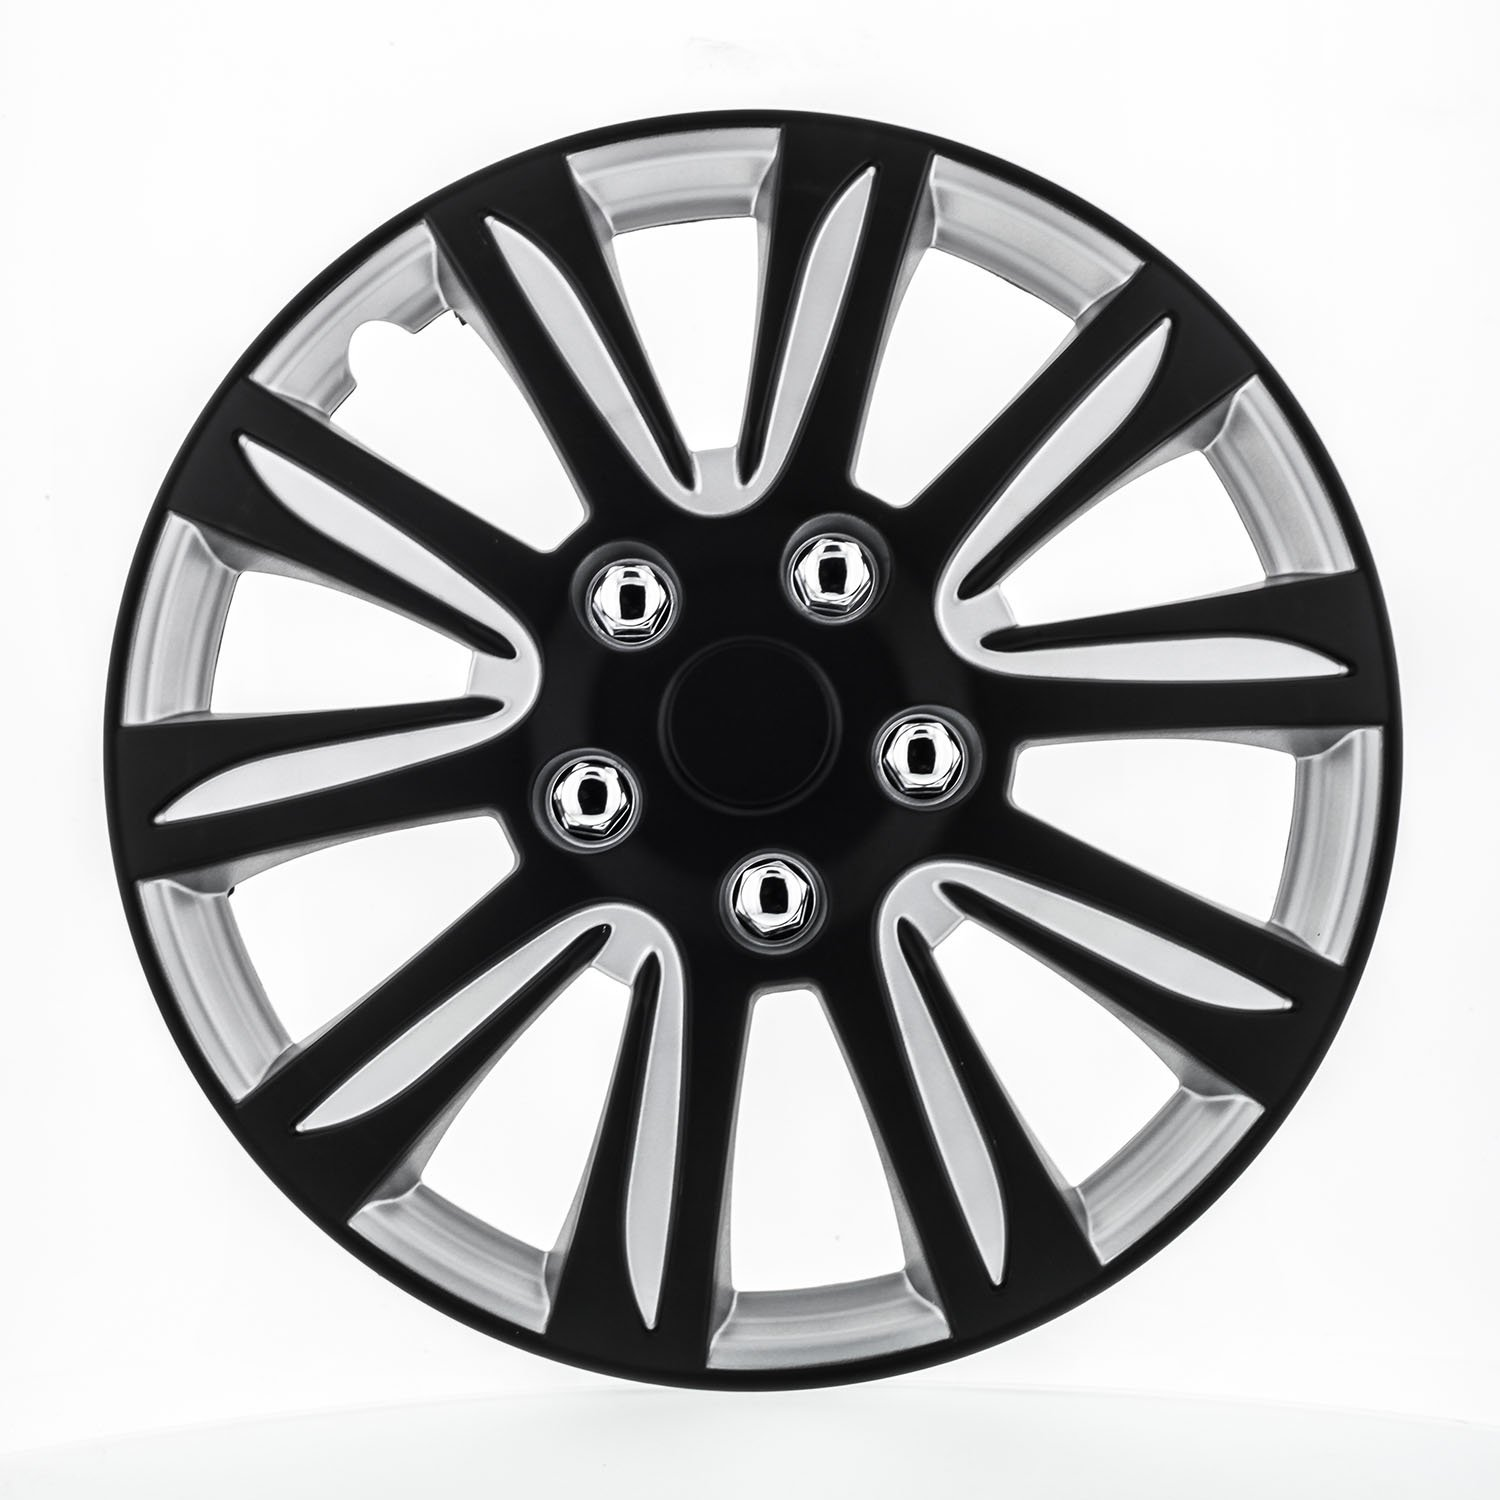 Pilot WH546-15B-BS Universal Fit Premier Toyota Camry Style Black 15 Inch Wheel Covers - Set of 4 Pilot Automotive